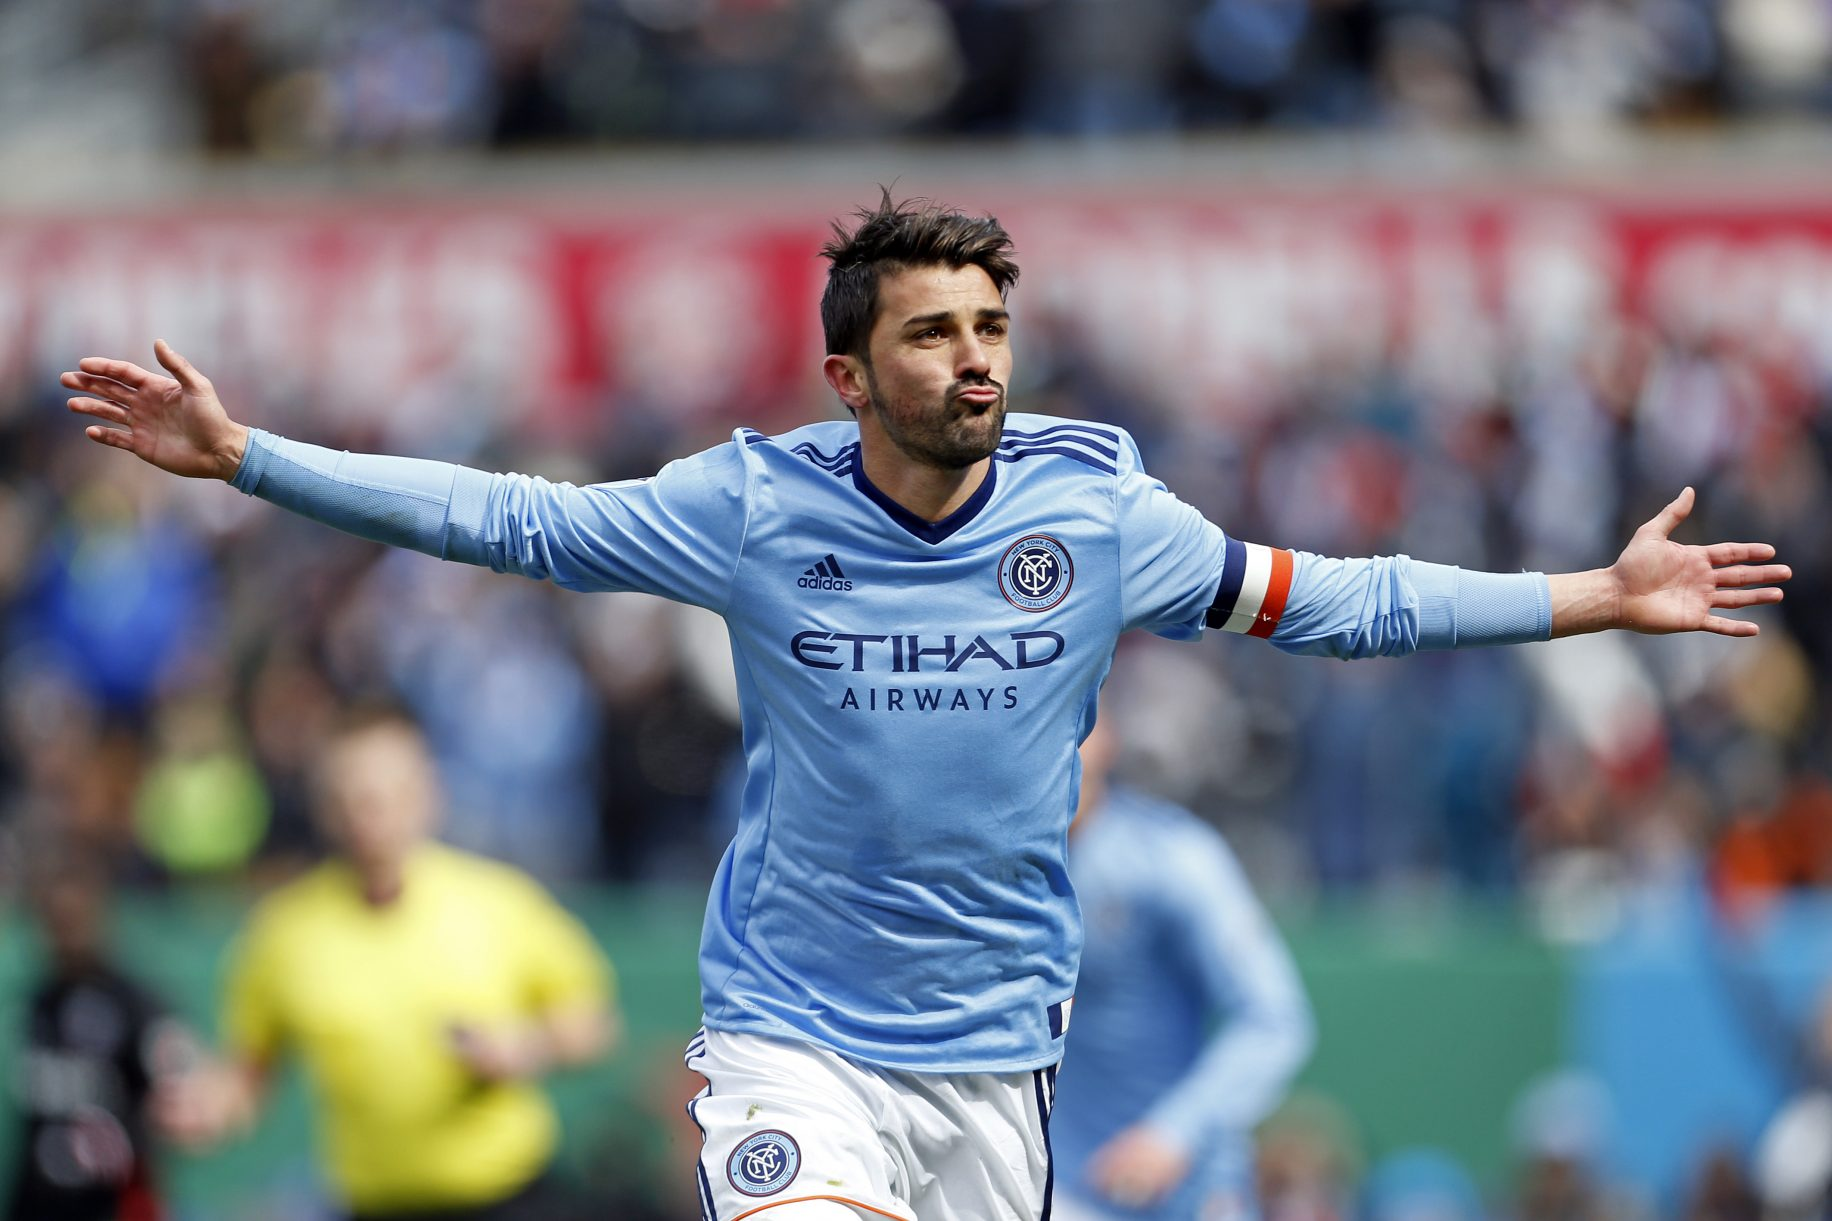 NYCFC Captain David Villa Extends Stay to 2018 Throws Out First